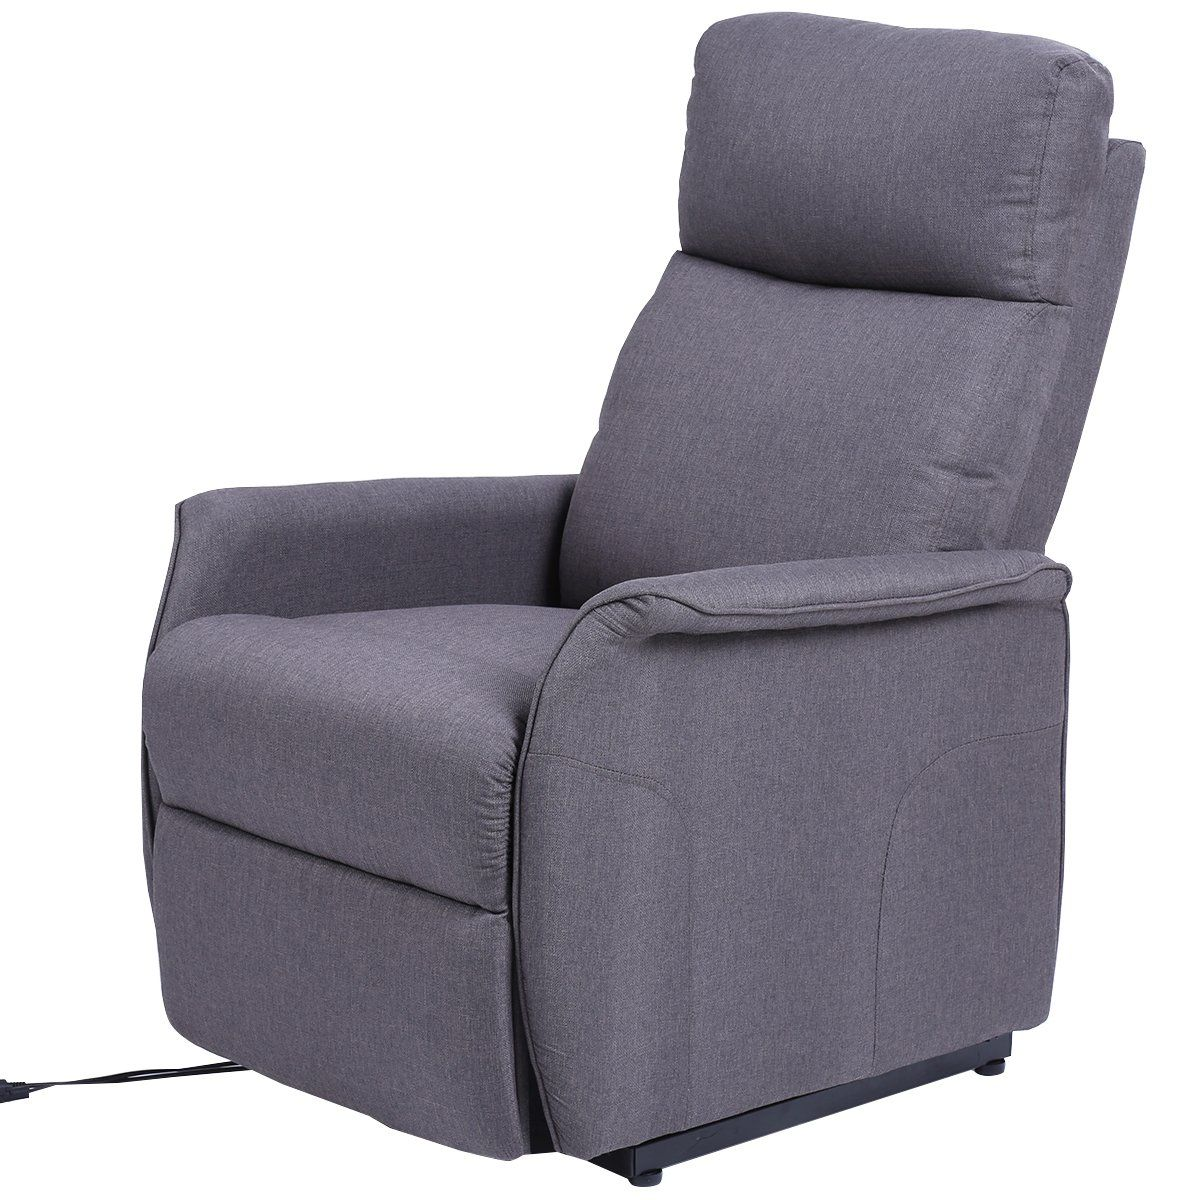 Giantex Electric Power Lift Chair Recliner Sofa Chair With